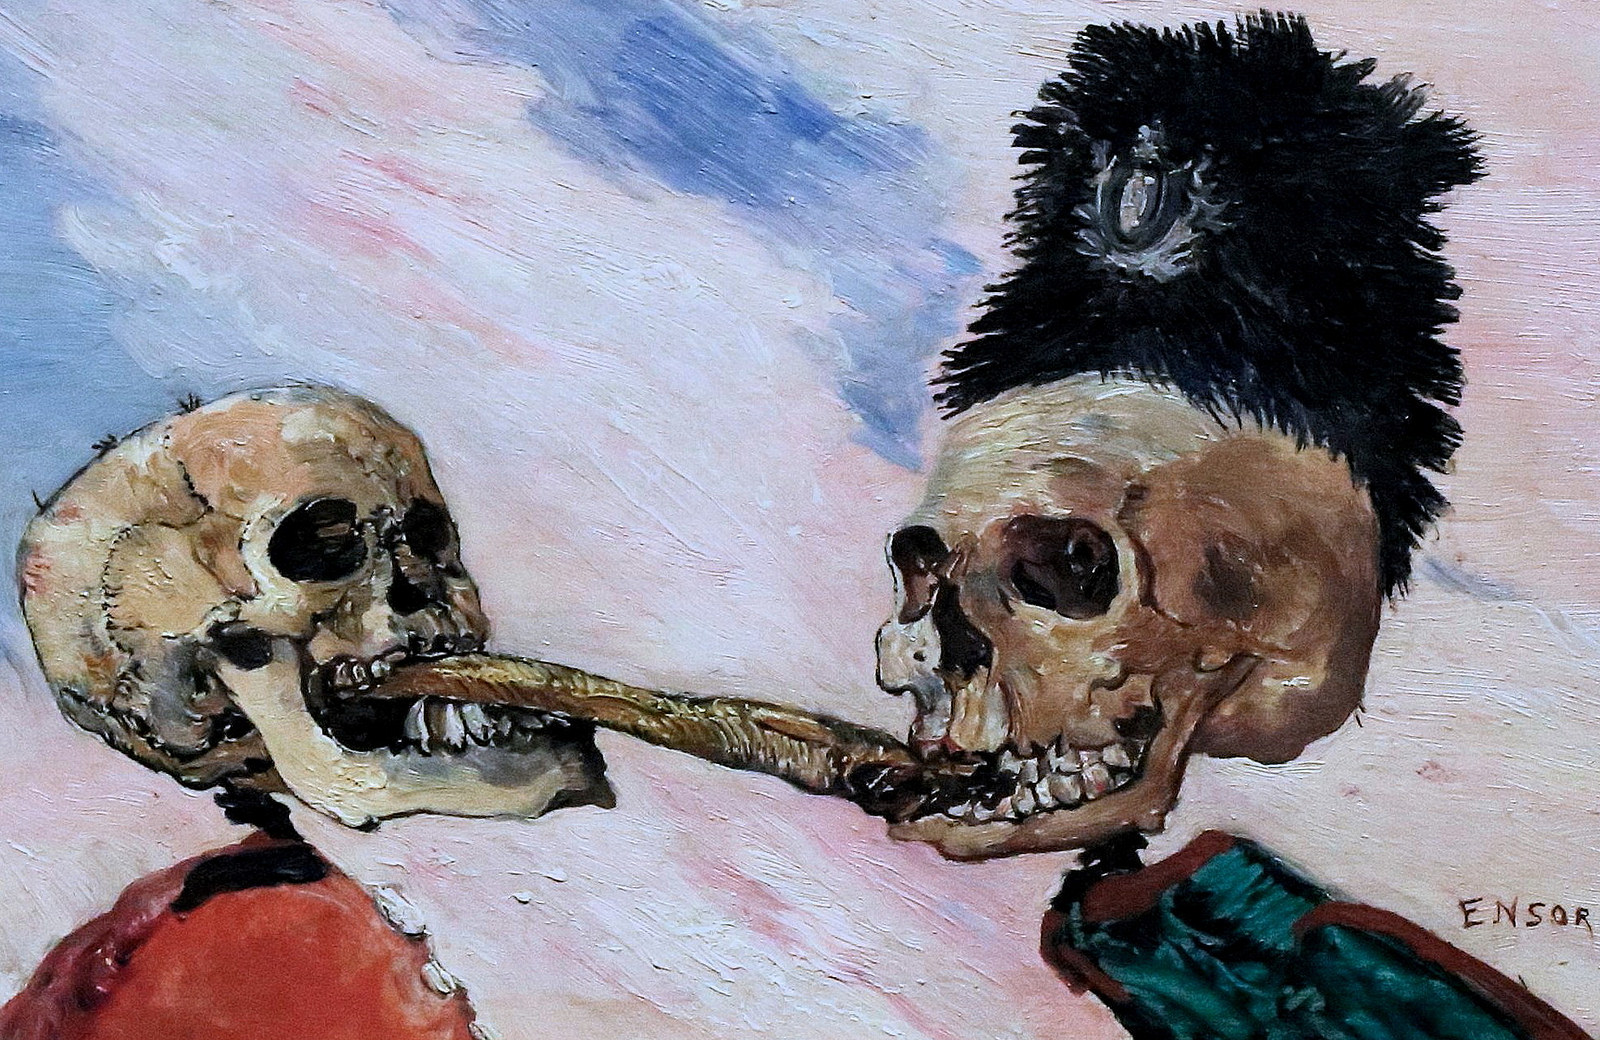 James Ensor pintor, Museo Bellas Artes Bruselas, Arte Flandes Bélgica - © https://creativecommons.org/licenses/by-nc-sa/2.0/